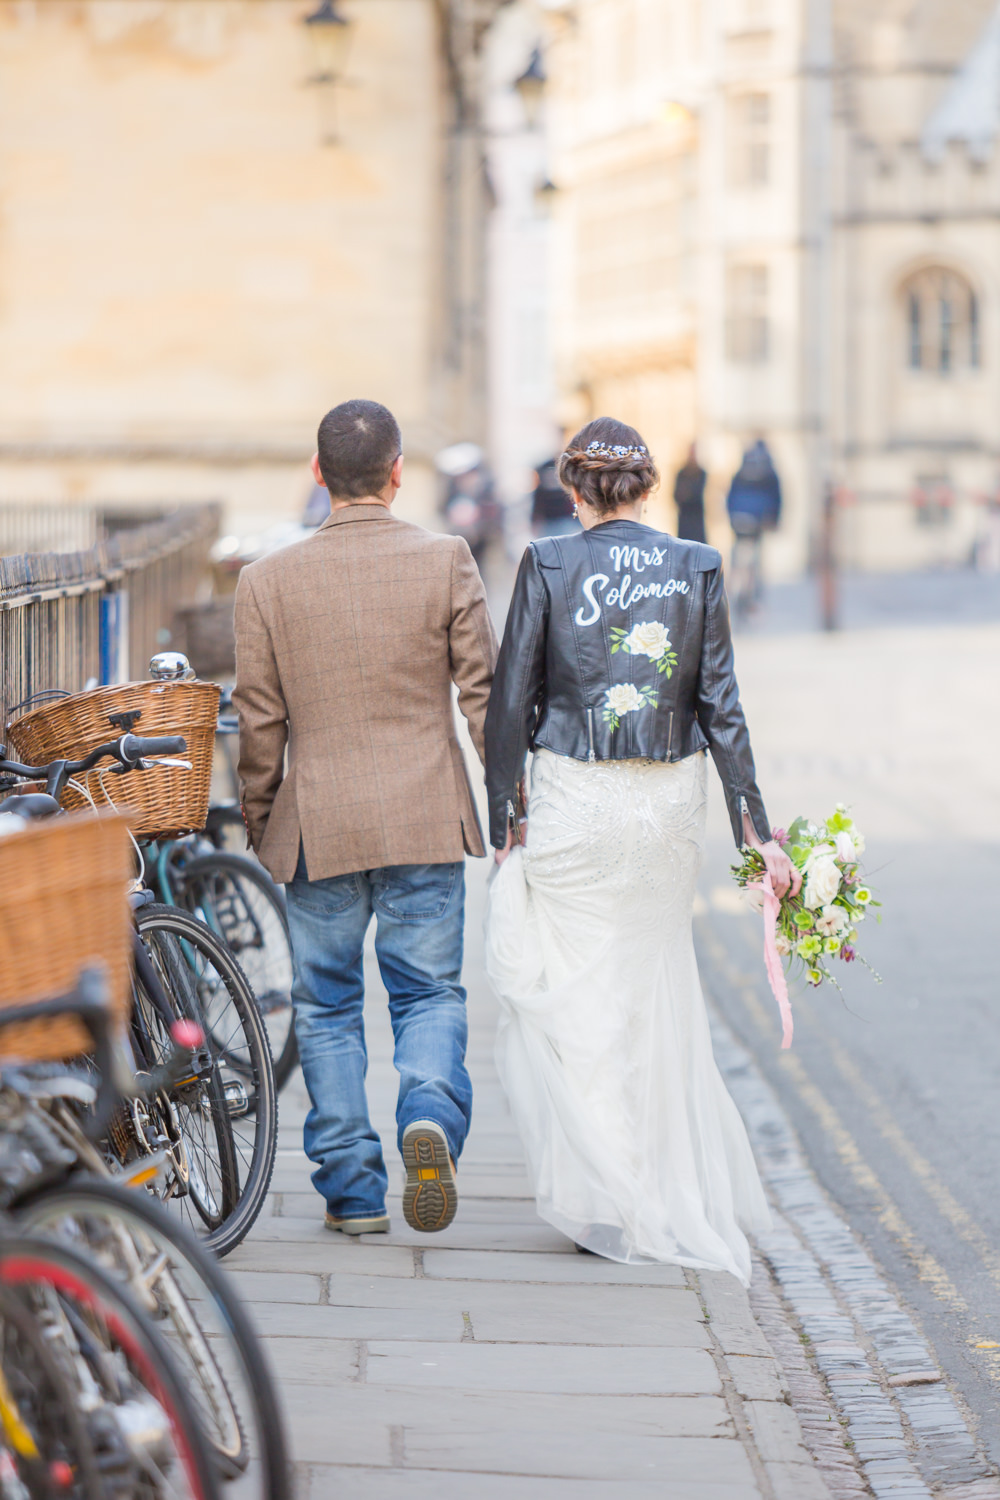 Bride Bridal Beaded Fitted Phase Eight Dress Tweed Jacket Jeans Groom Leather Jacket HandpaintedBodleian Library Wedding Anita Nicholson Photography